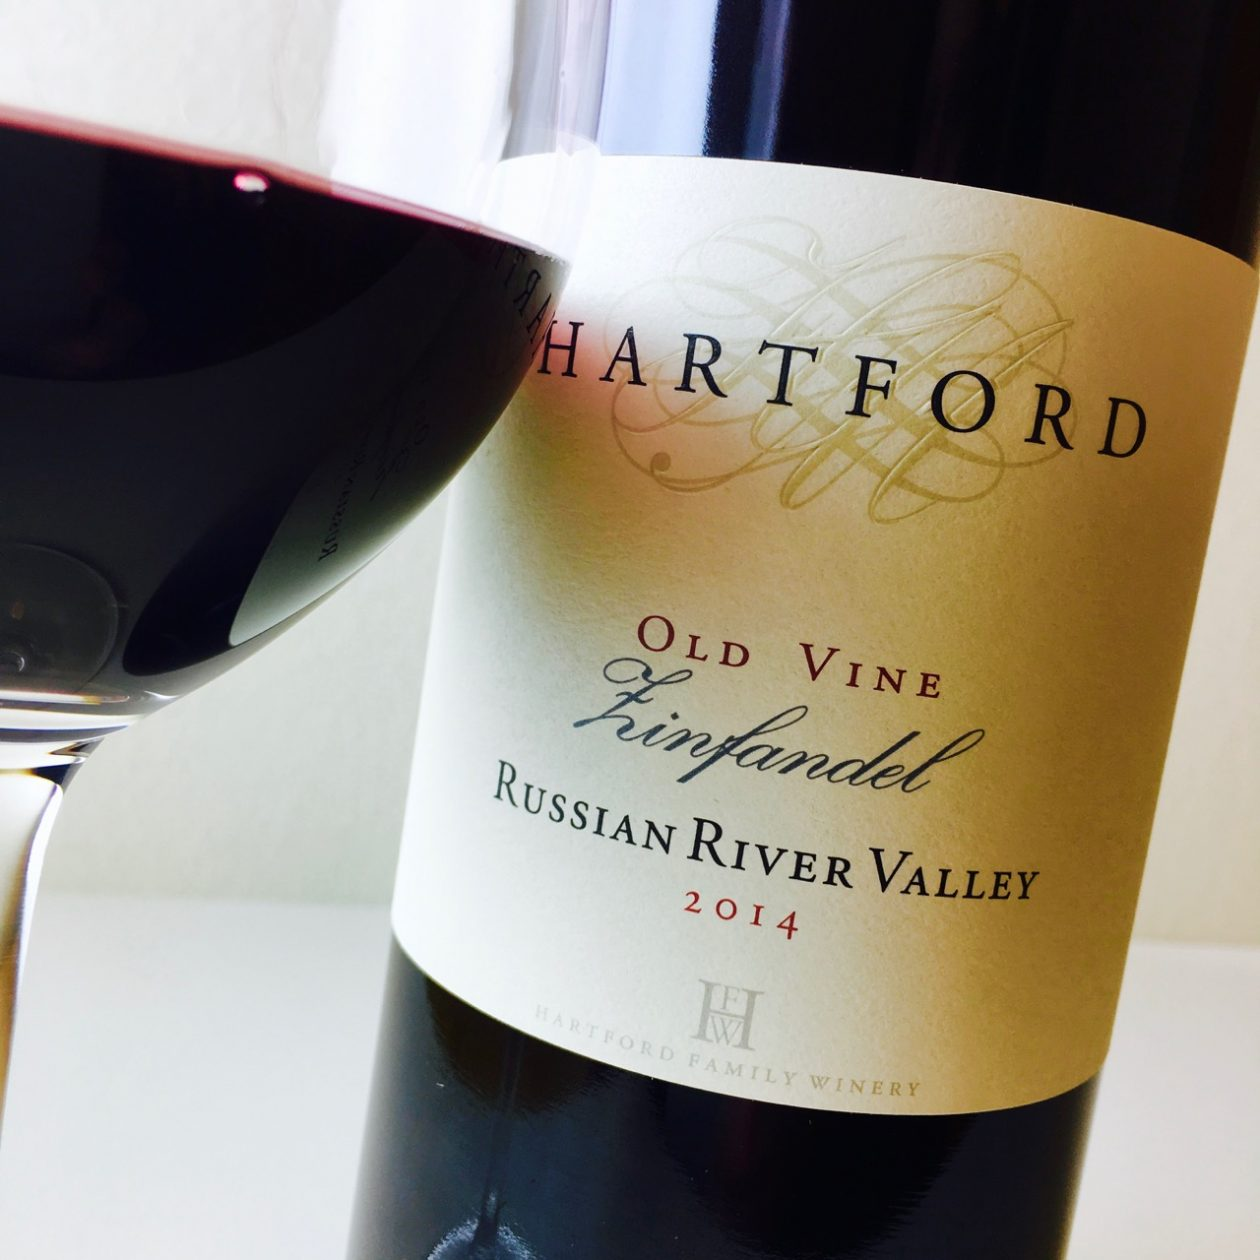 2014 Hartford Zinfandel Old Vine Russian River Valley, Sonoma County